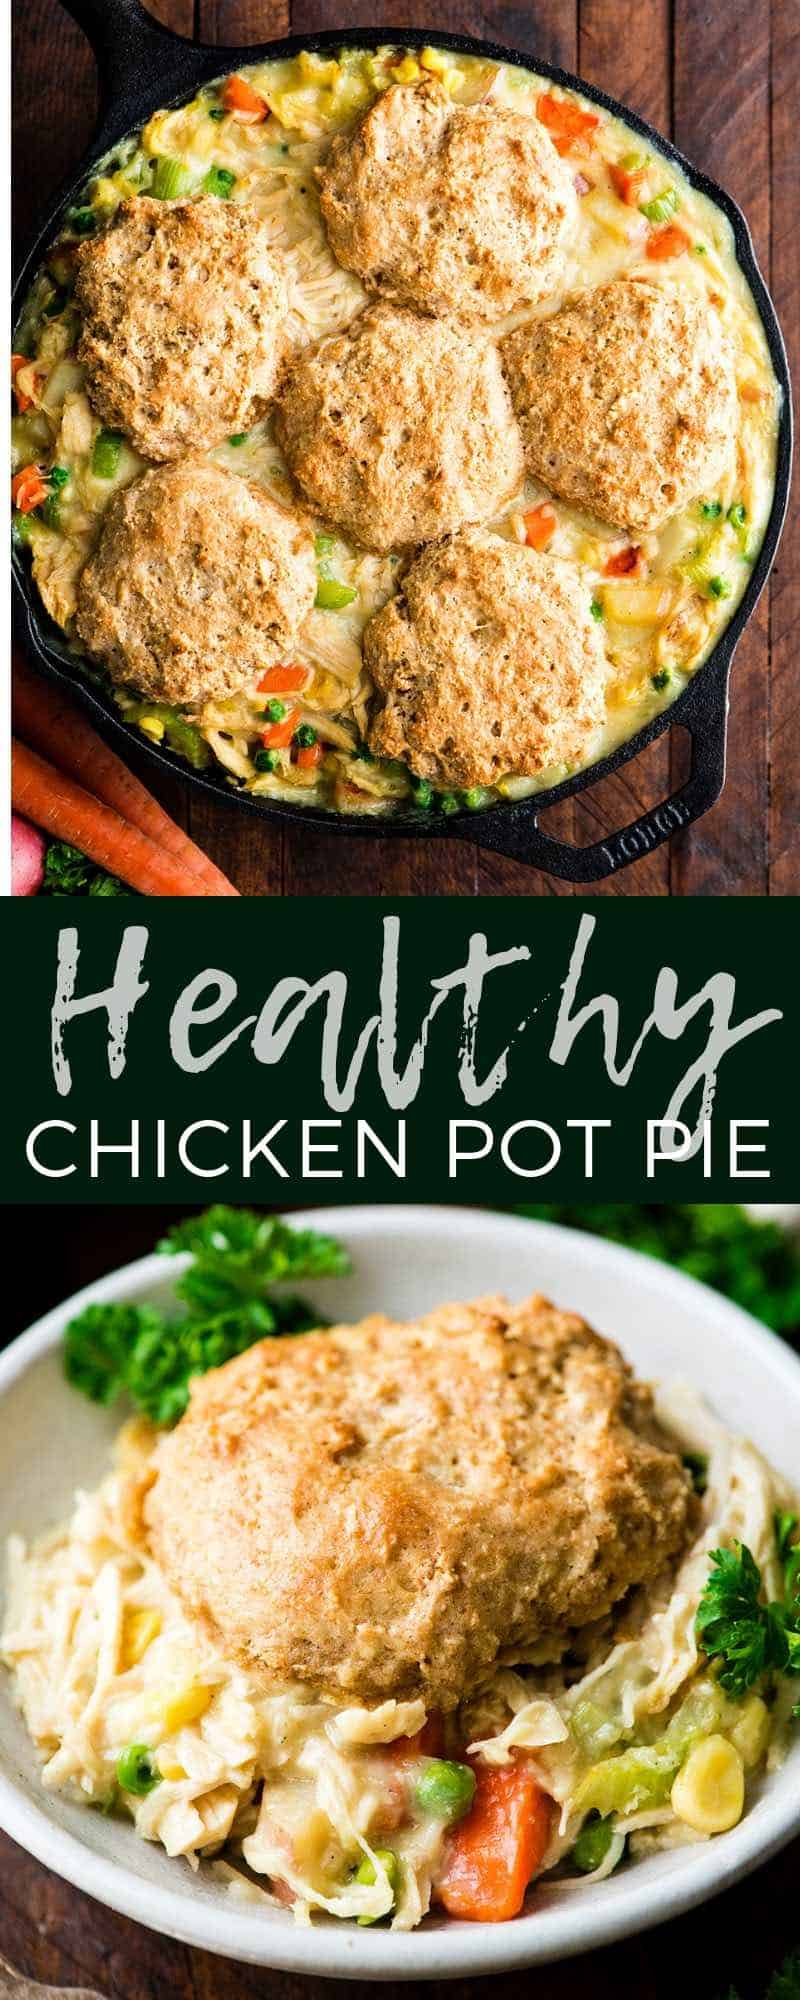 Healthy Chicken Pot Pie Recipe is made completely from scratch and has a delicious whole wheat biscuit crust. It is a perfect lightened up weeknight dinner recipe that is still cozy and comforting. #chickenpotpie #fromscratch #healthy #healthyrecipe #maindish